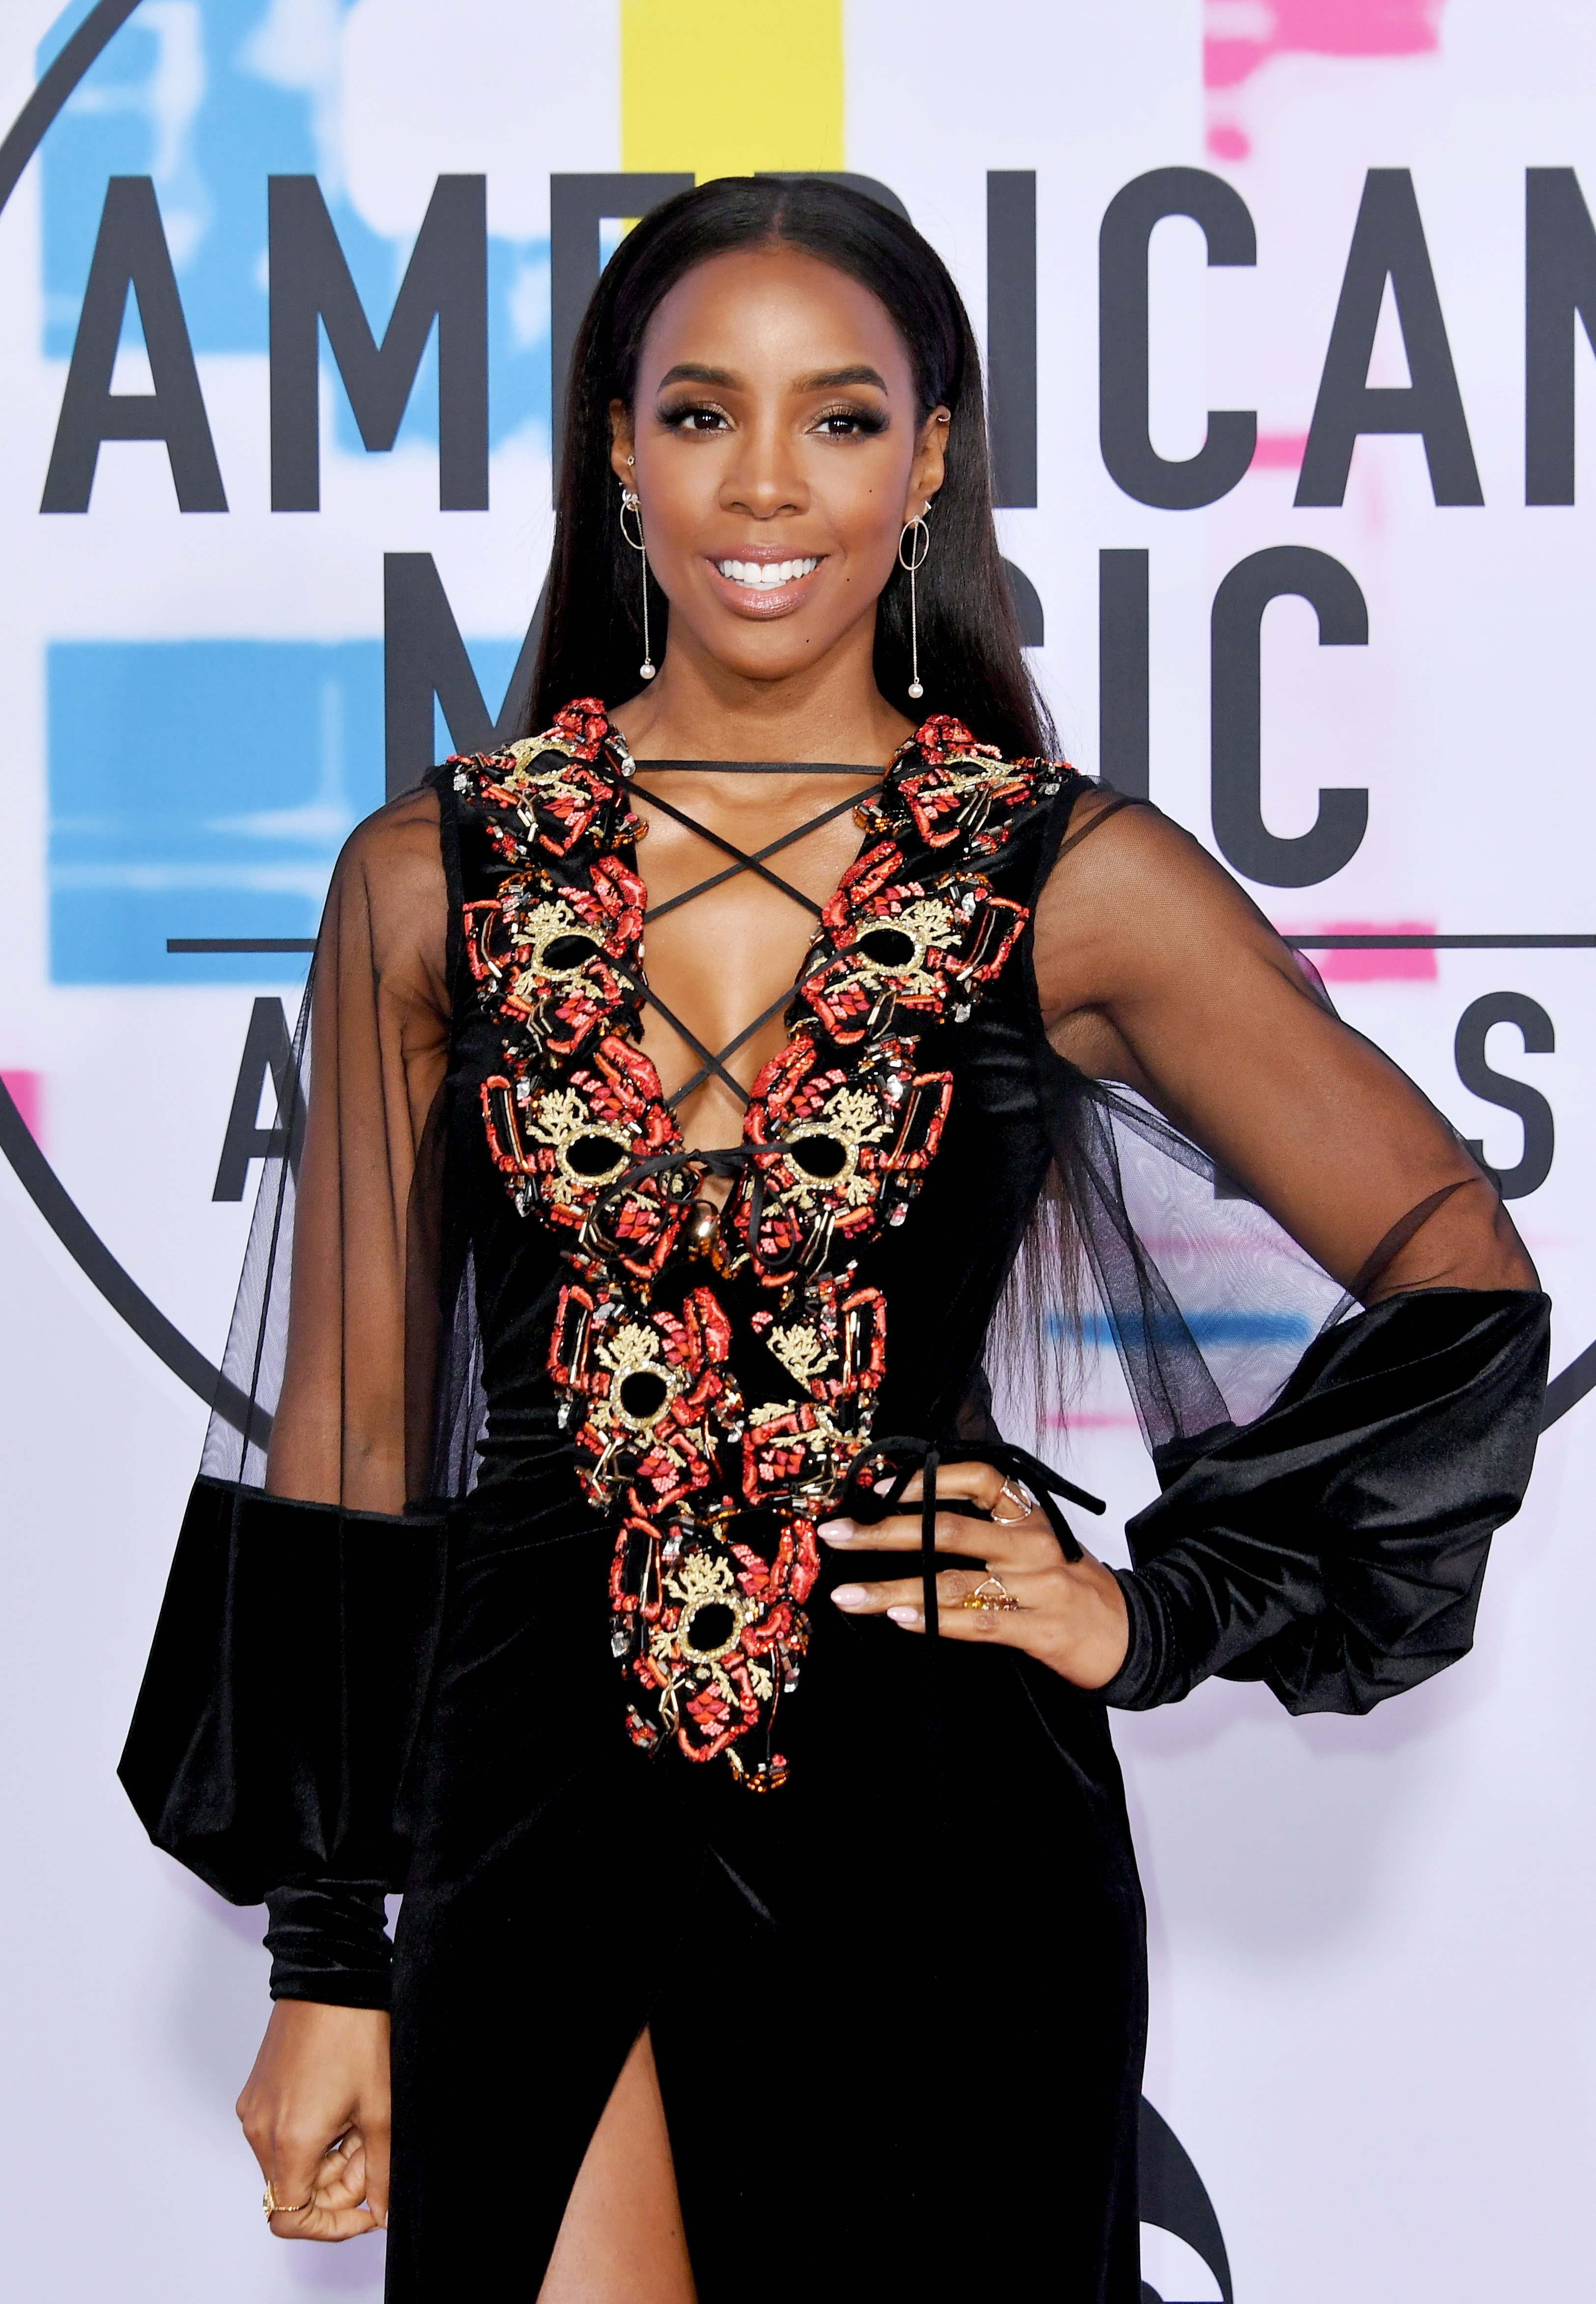 Kelly Rowland poses at the 2017 American Music Awards at Microsoft Theater on November 19, 2017 in Los Angeles, California.   Source: Getty Images